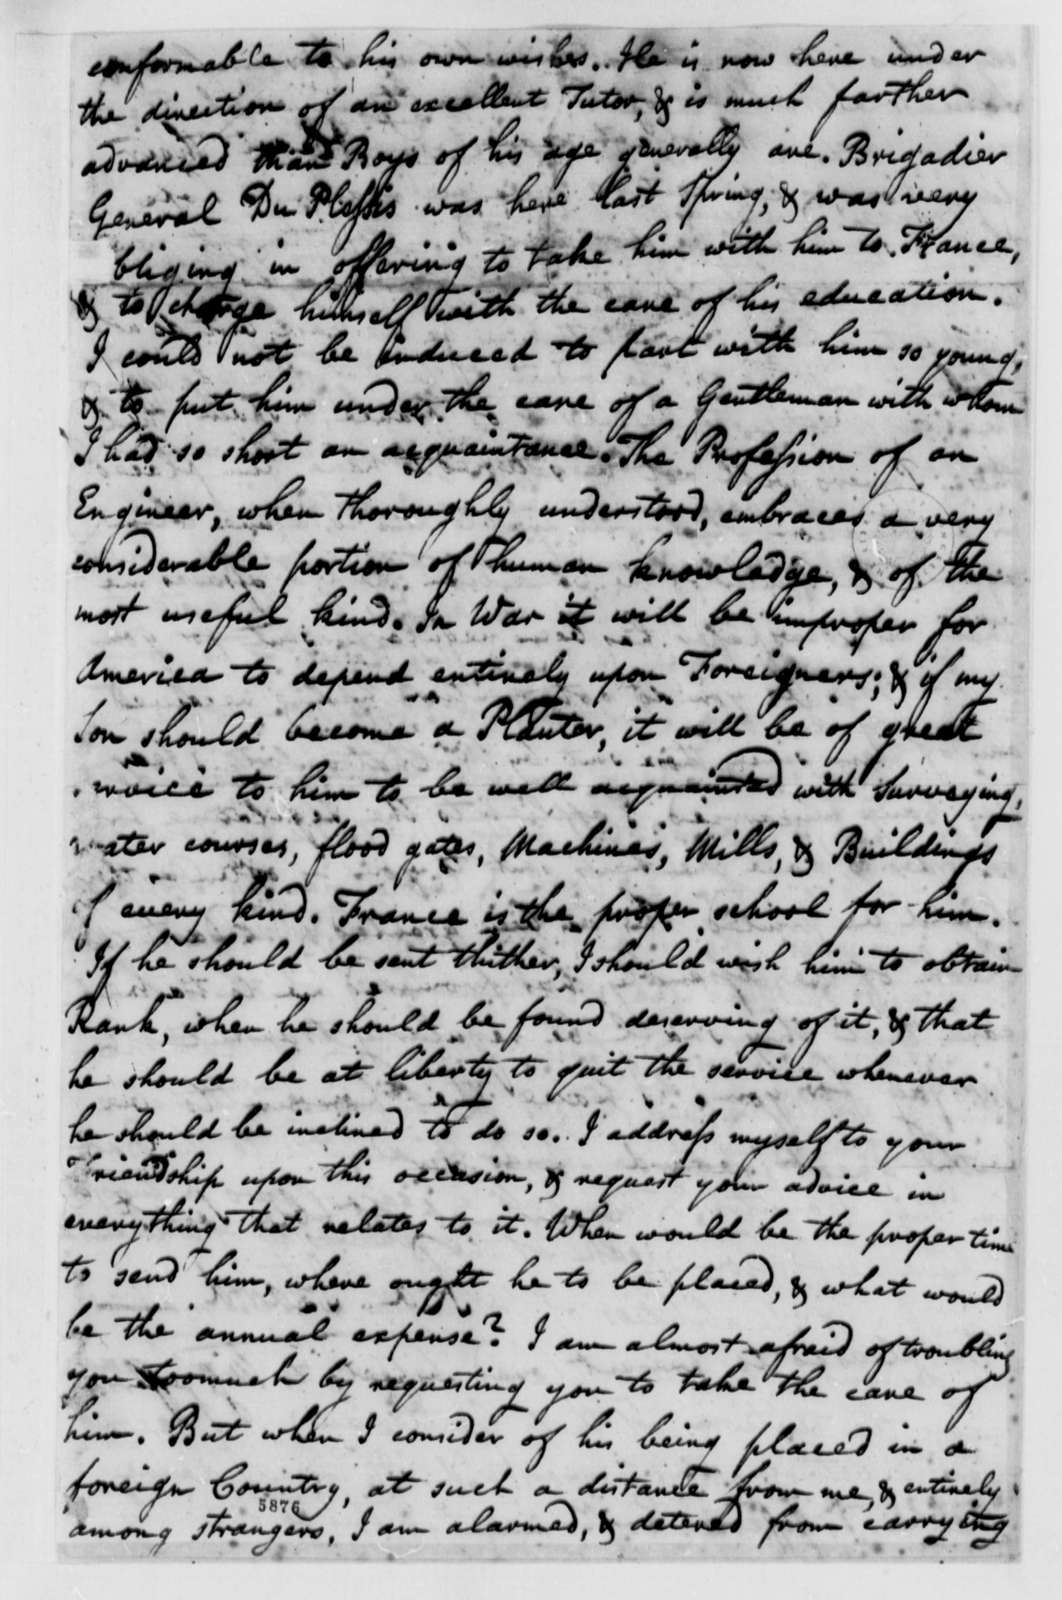 Ralph Izard to Thomas Jefferson, November 10, 1787